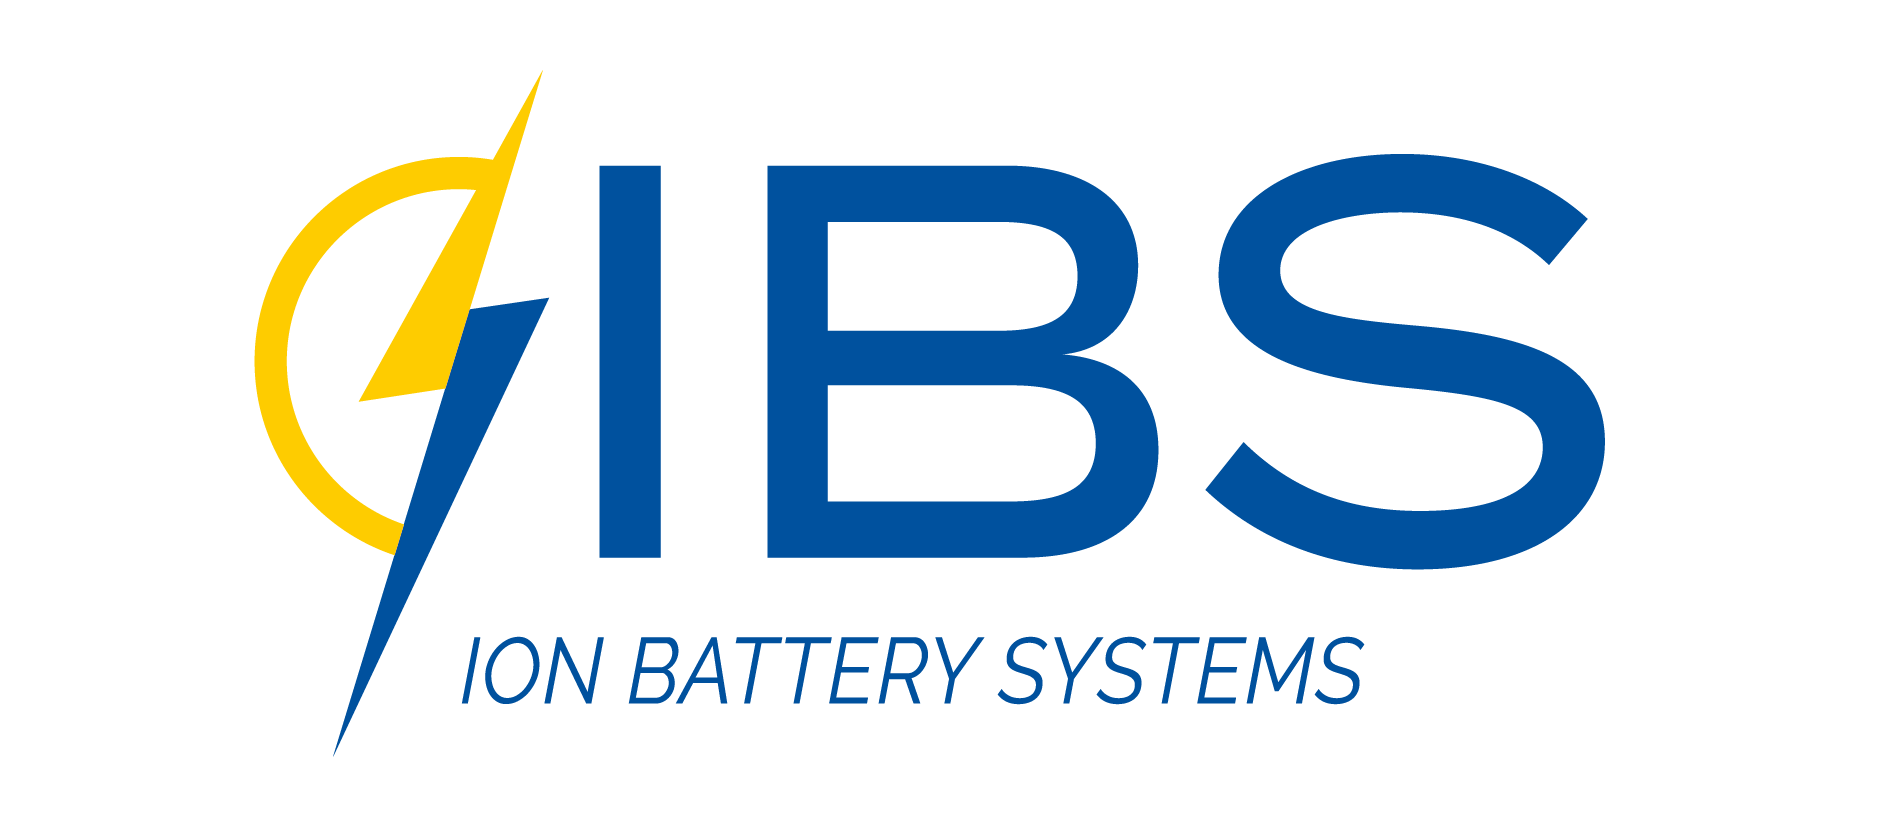 ION BATTERY SYSTEMS